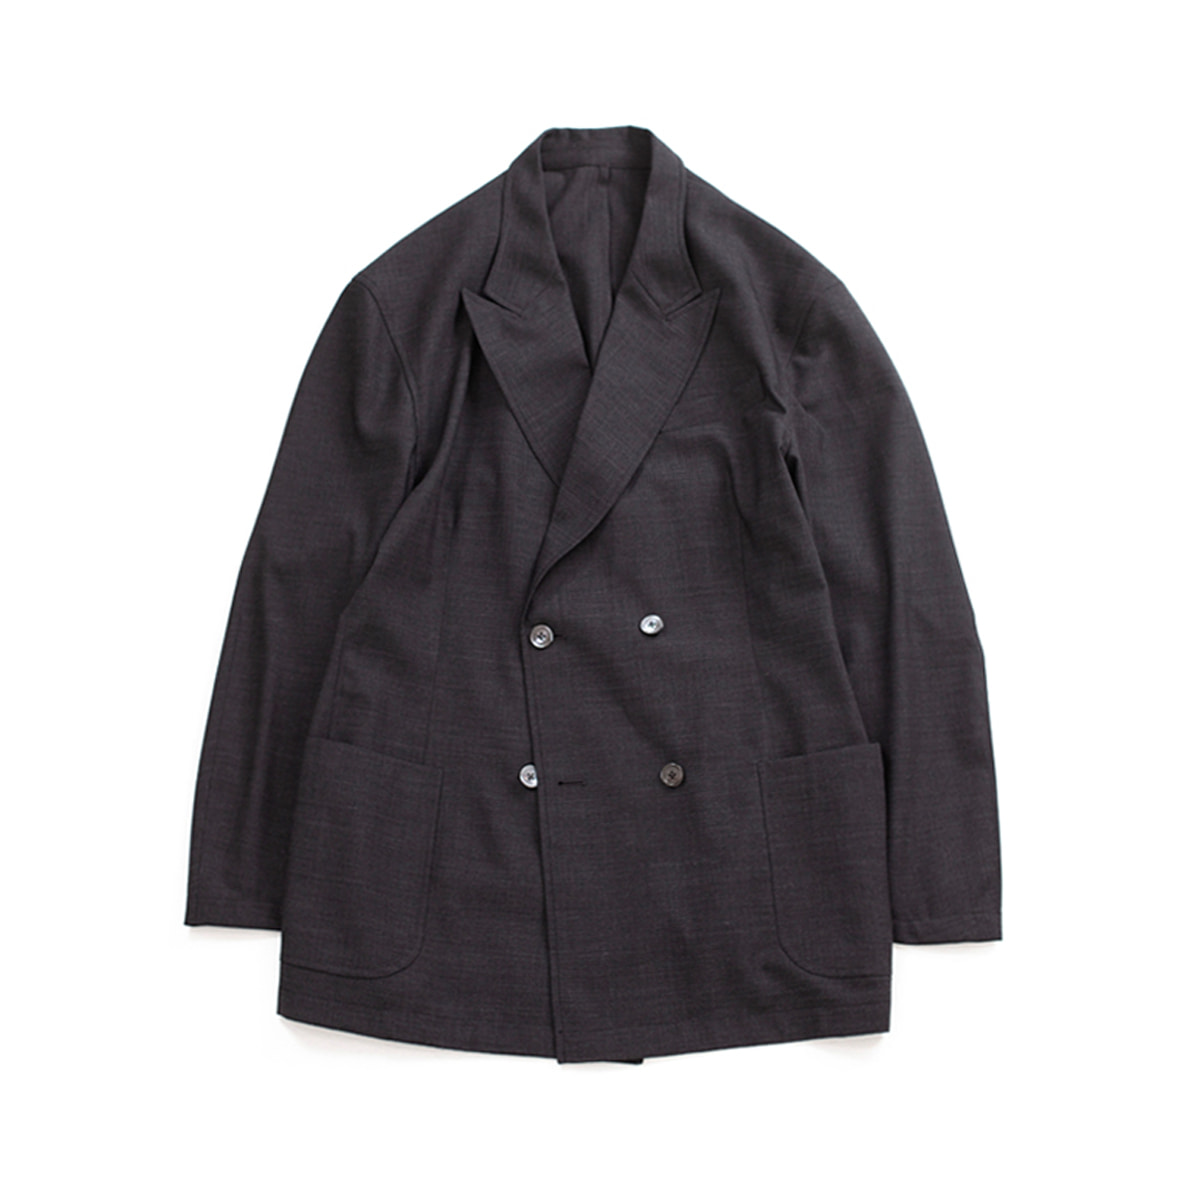 [BROWNYARD ZERO] ZERO DOUBLE BREASTED JACKET 'GREY'